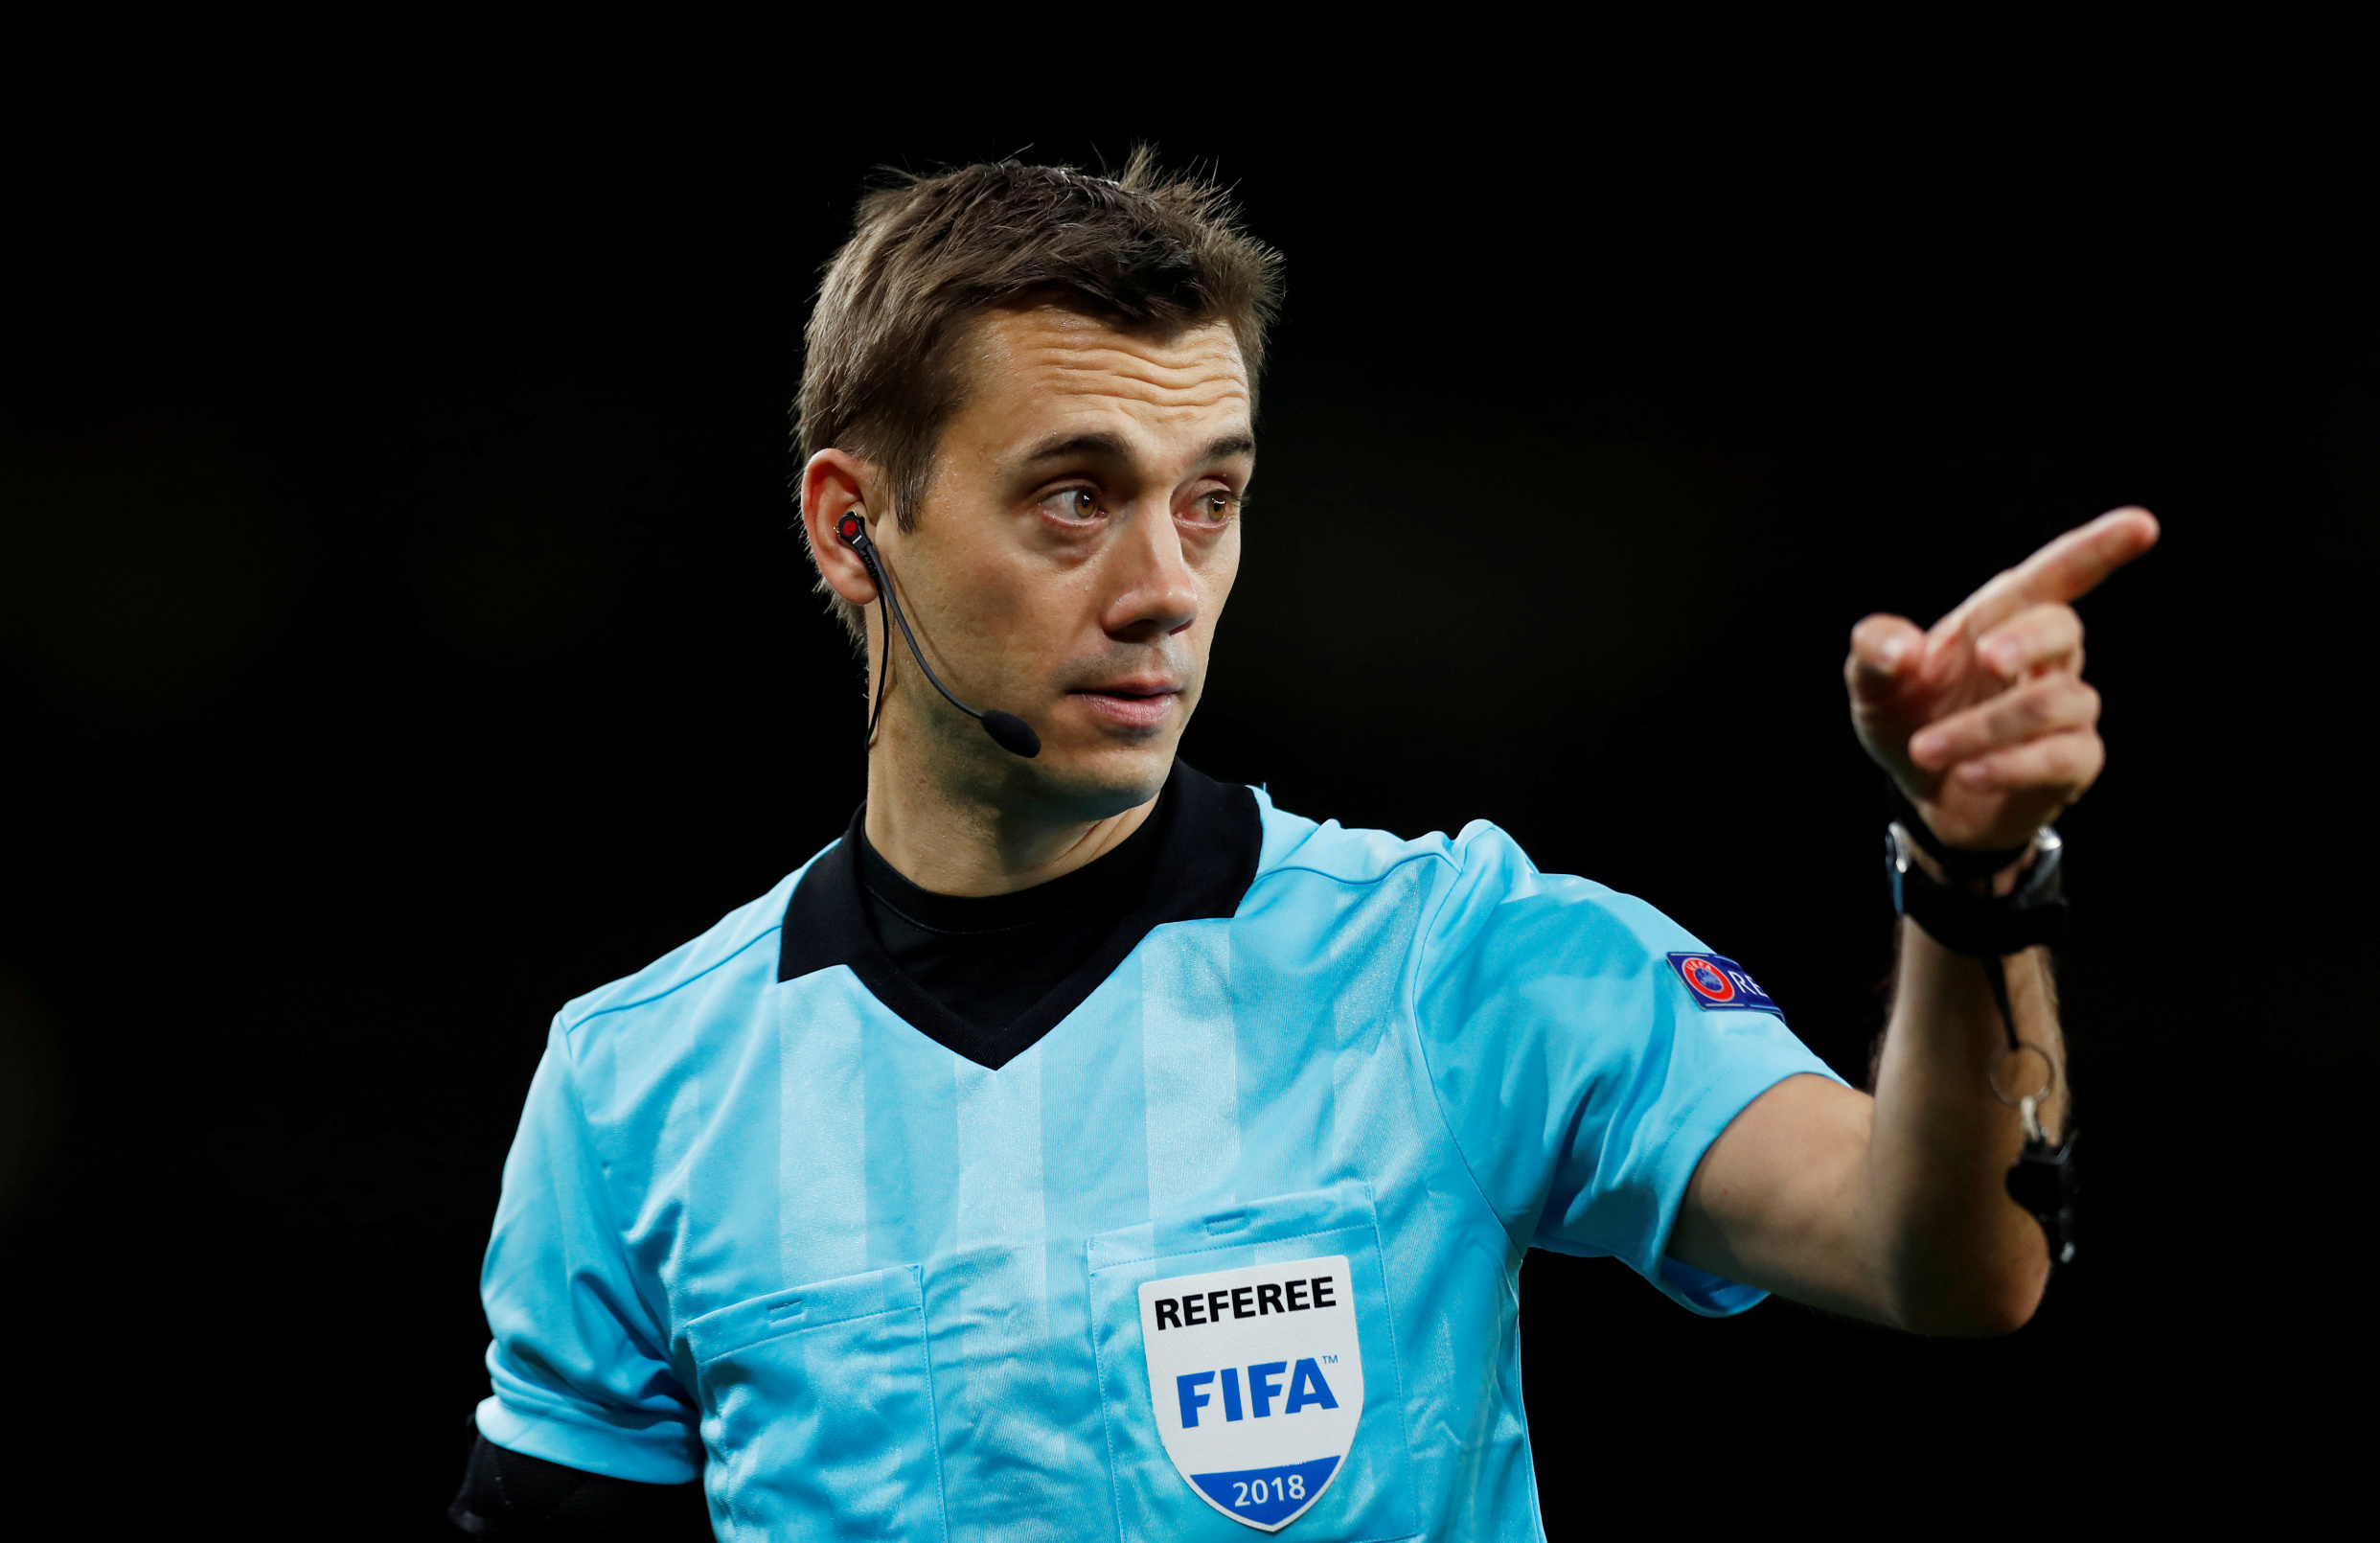 FILE PHOTO: Soccer Football - Europa League Semi Final First Leg - Arsenal vs Atletico Madrid - Emirates Stadium, London, Britain - April 26, 2018   Referee Clement Turpin gestures   Action Images via Reuters/Andrew Couldridge/File Photo